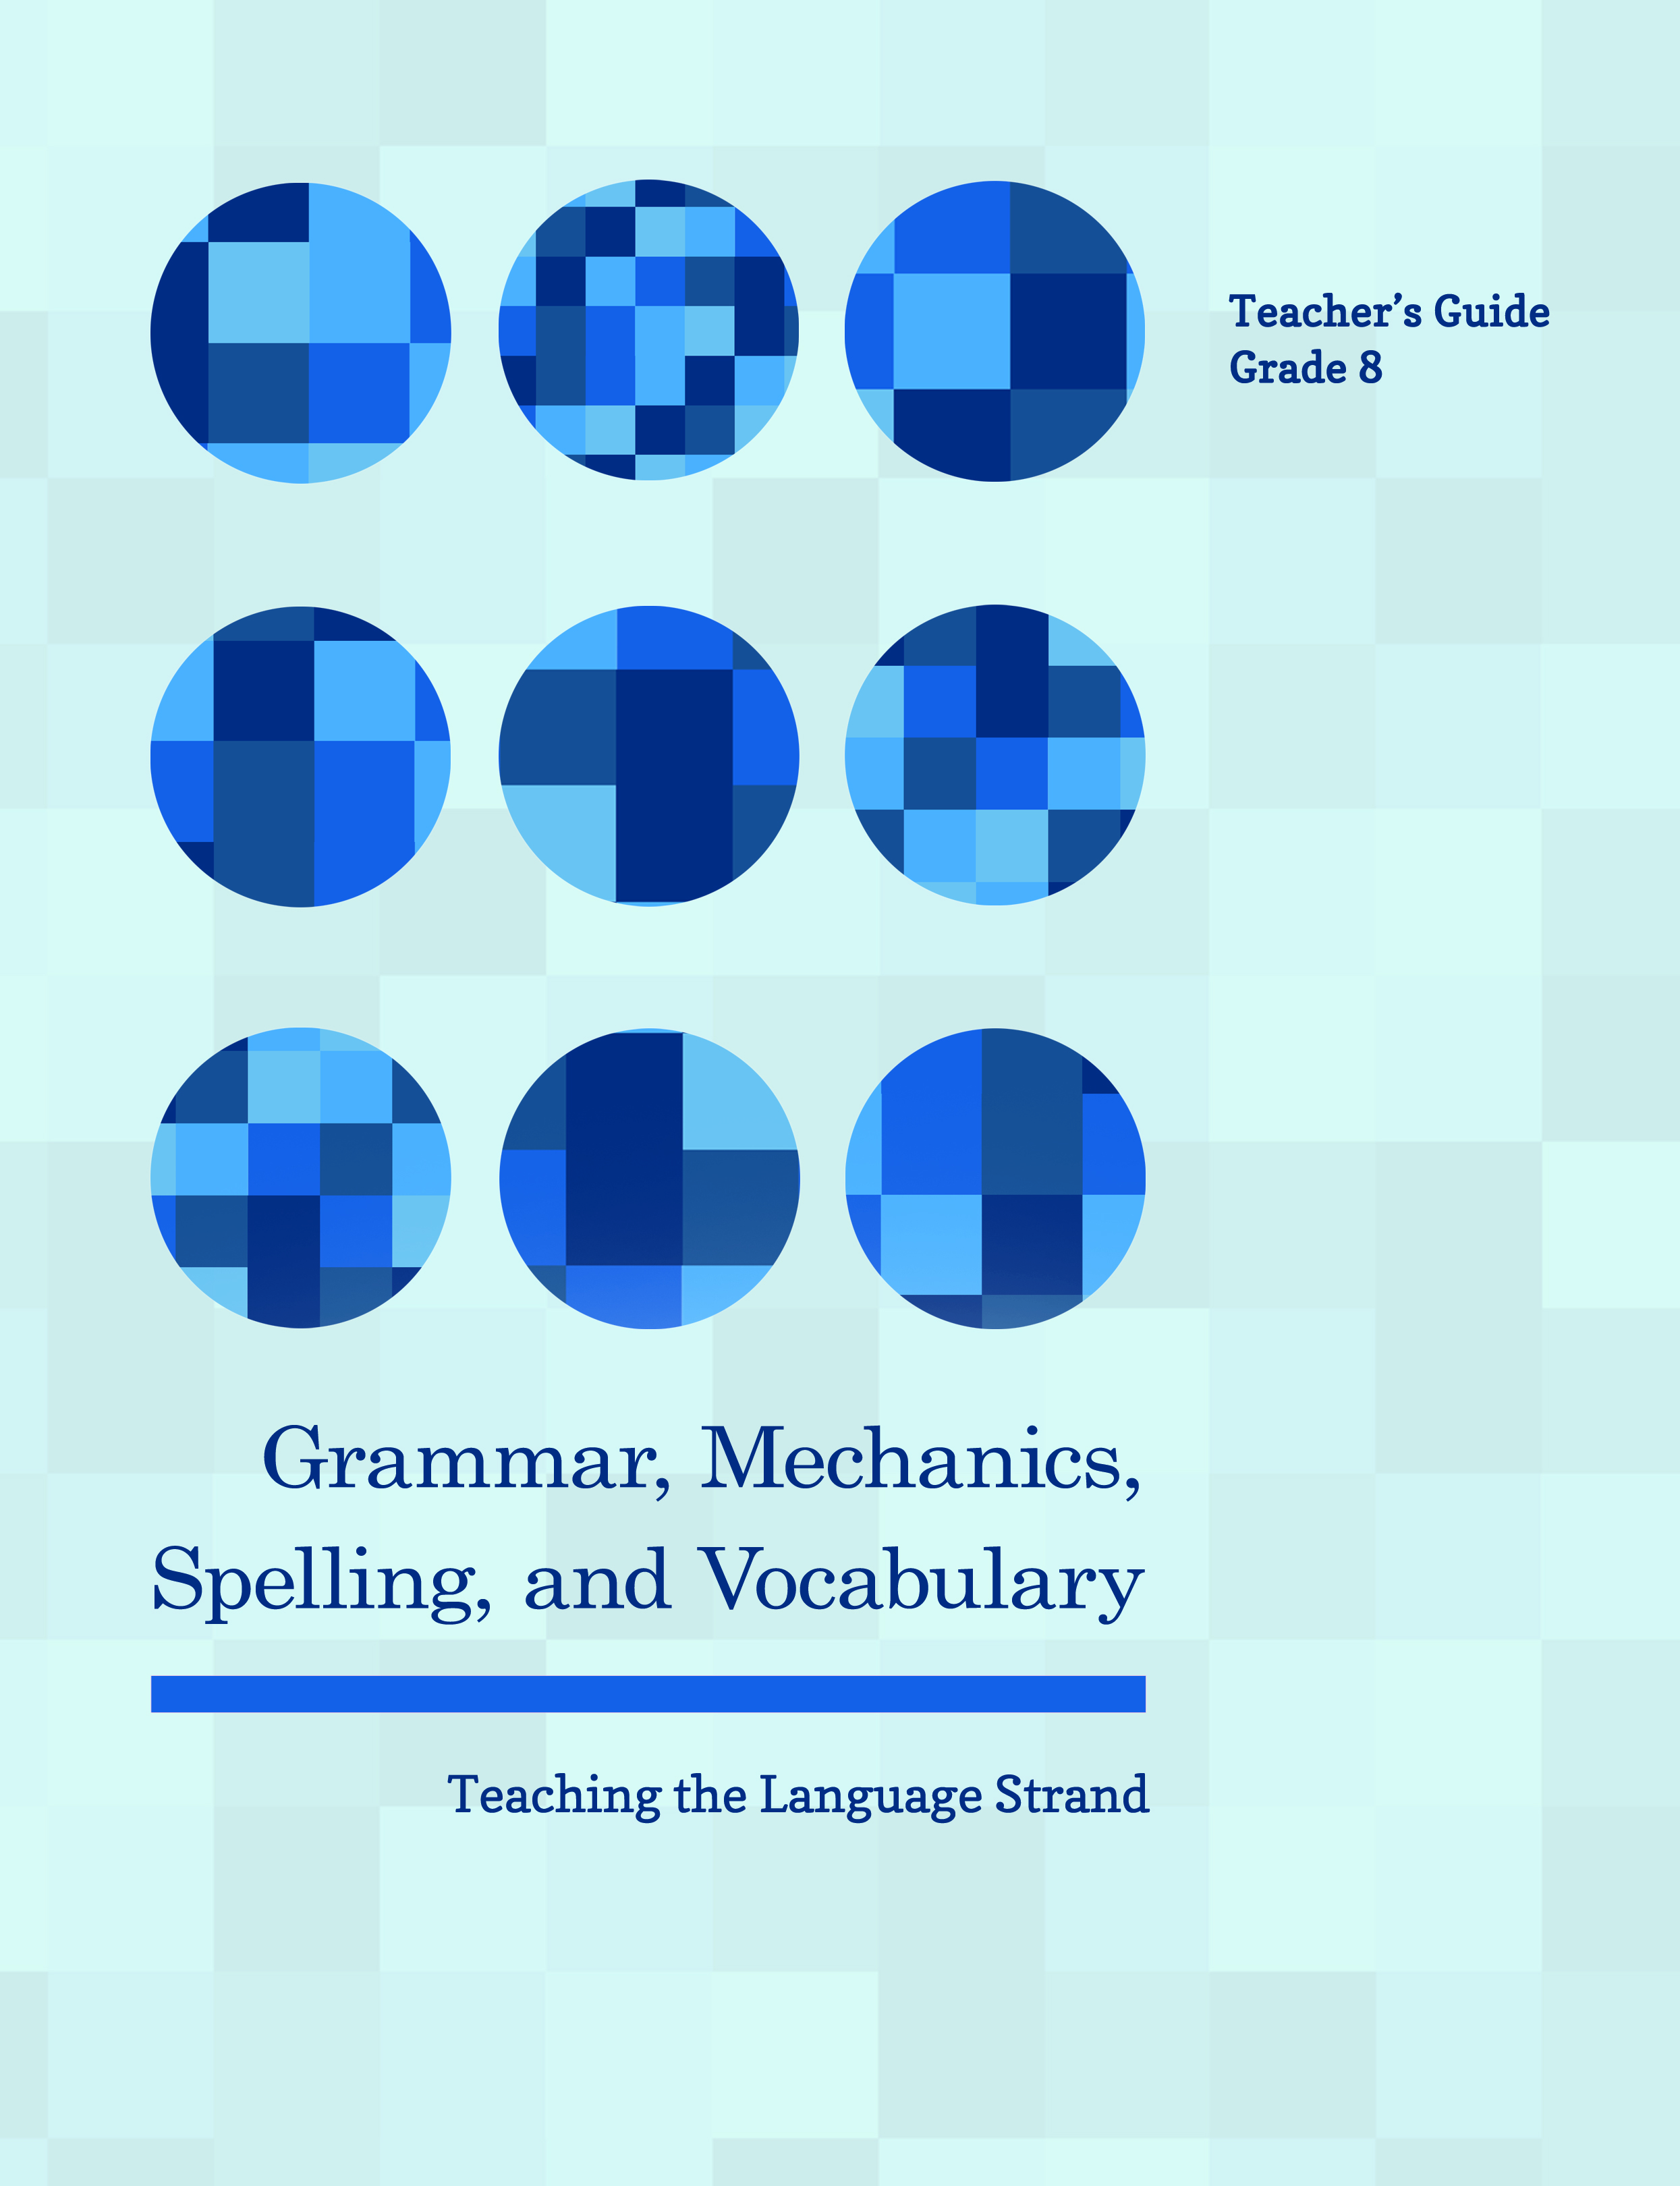 Pennington Publishing's Grammar, Mechanics, Spelling, and Vocabulary  Grades 4-8 Programs